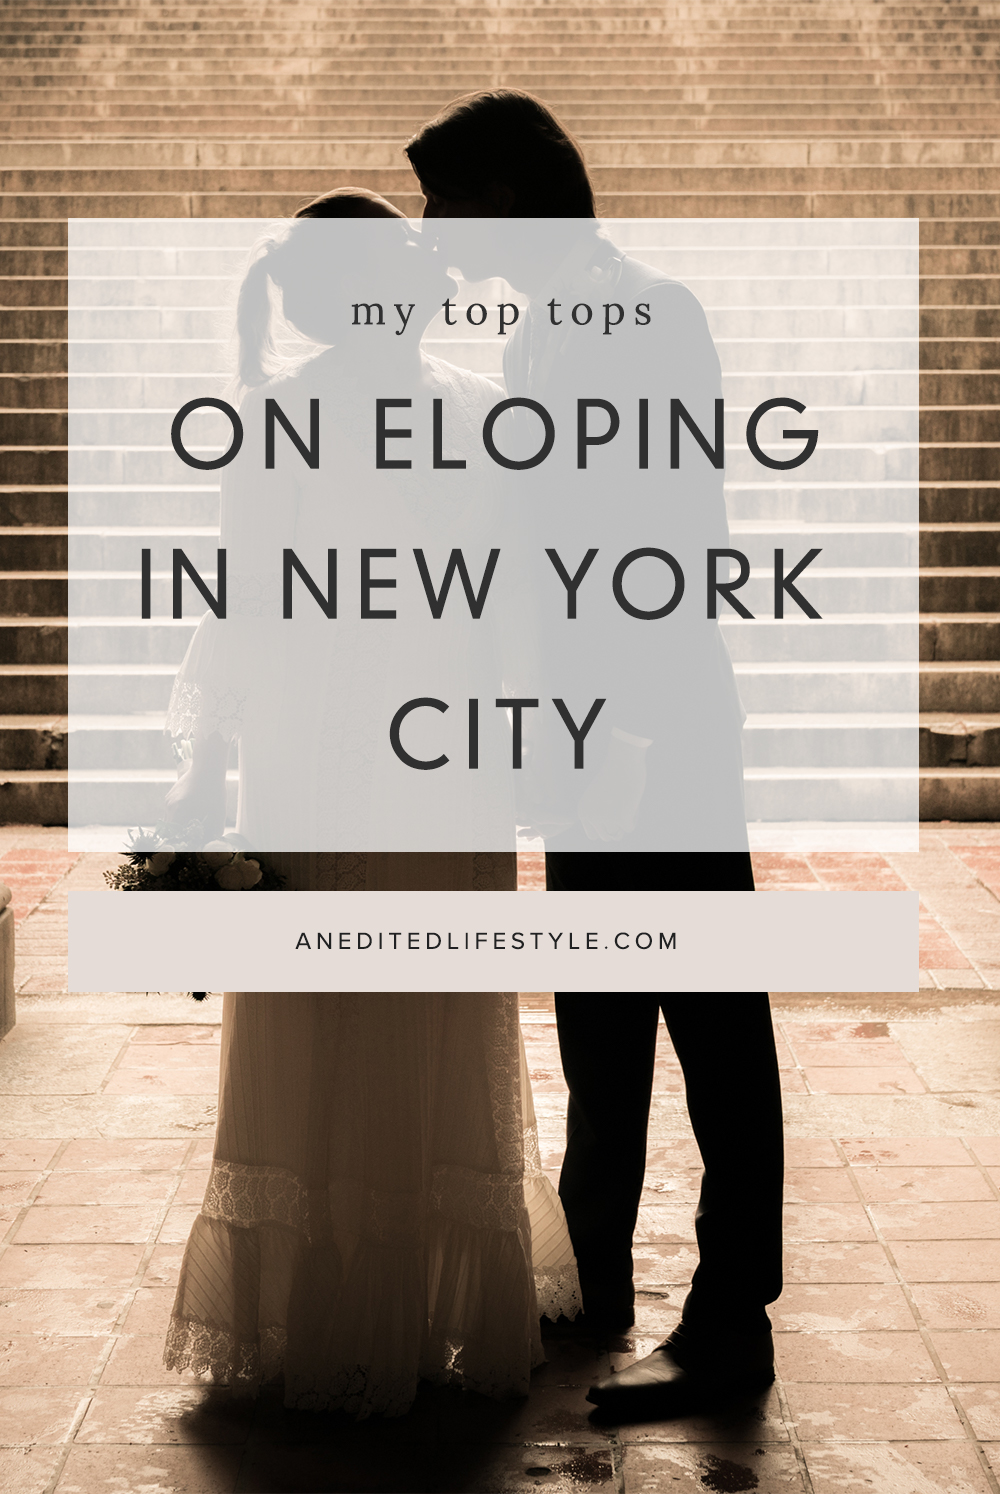 an edited lifestyle wedding tips for eloping